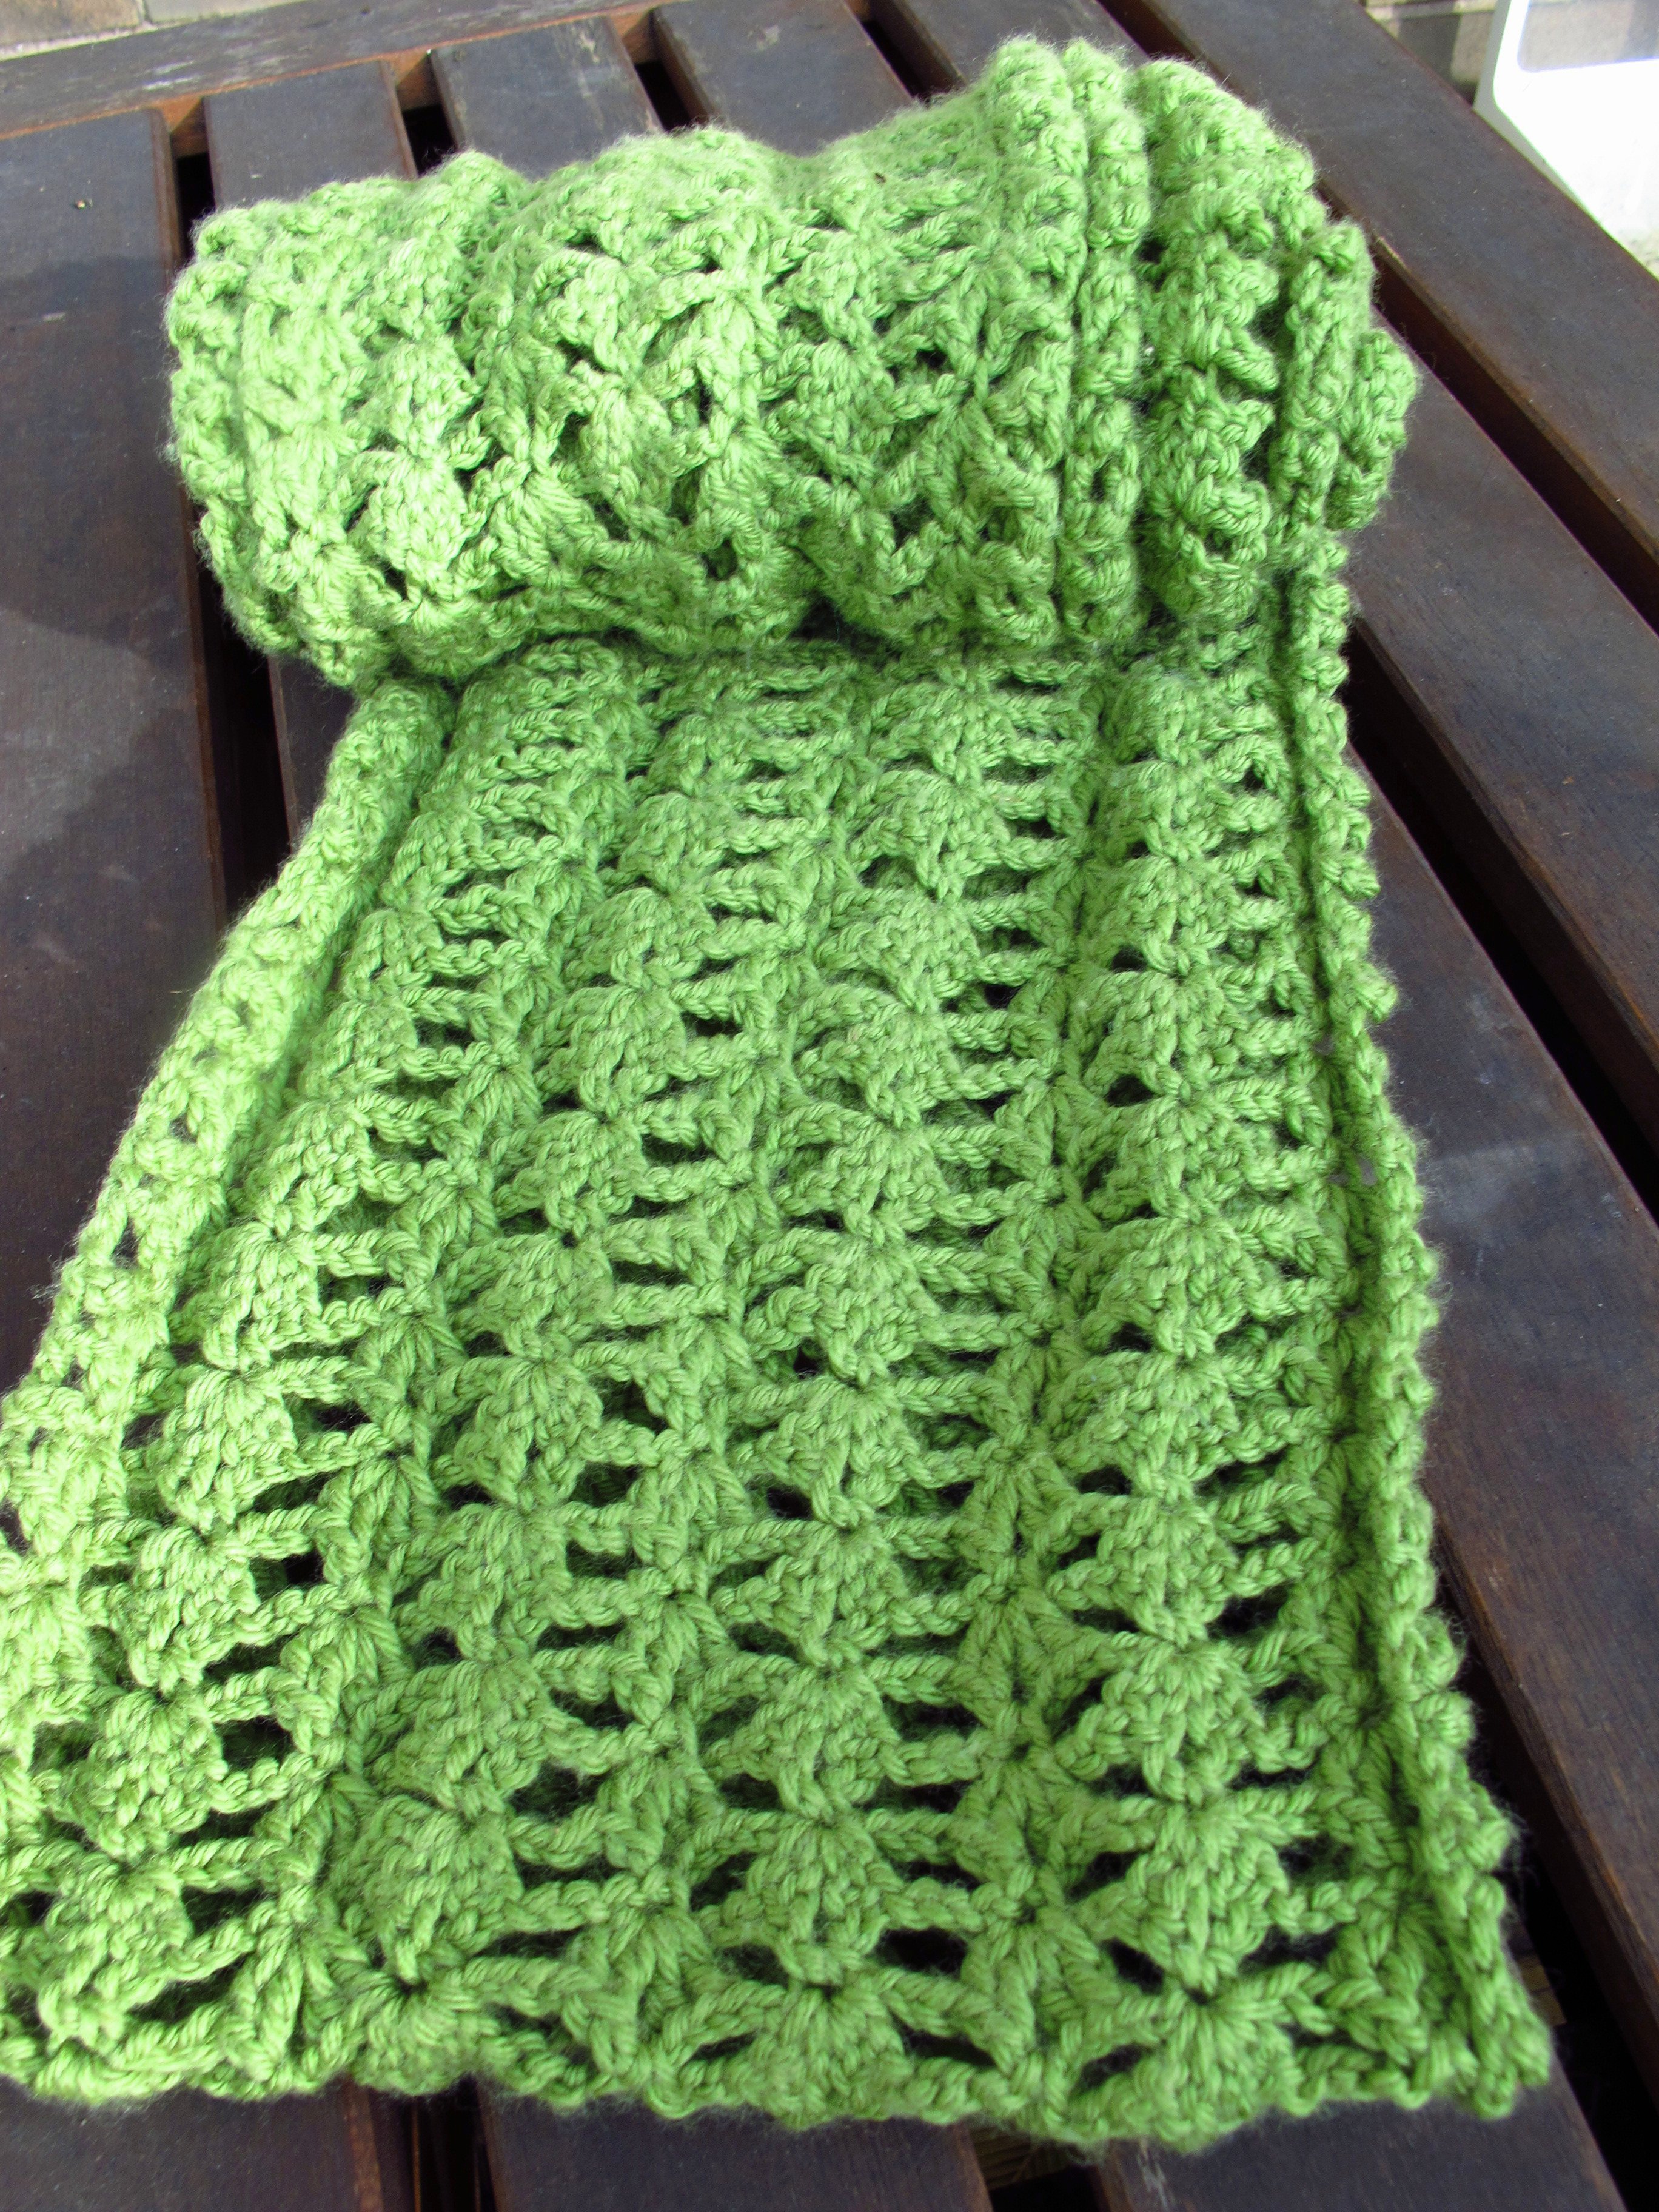 Lovely Diy Crocheted Lacy Green Infinity Scarf Pattern Lacy Crochet Of Innovative 50 Pics Lacy Crochet